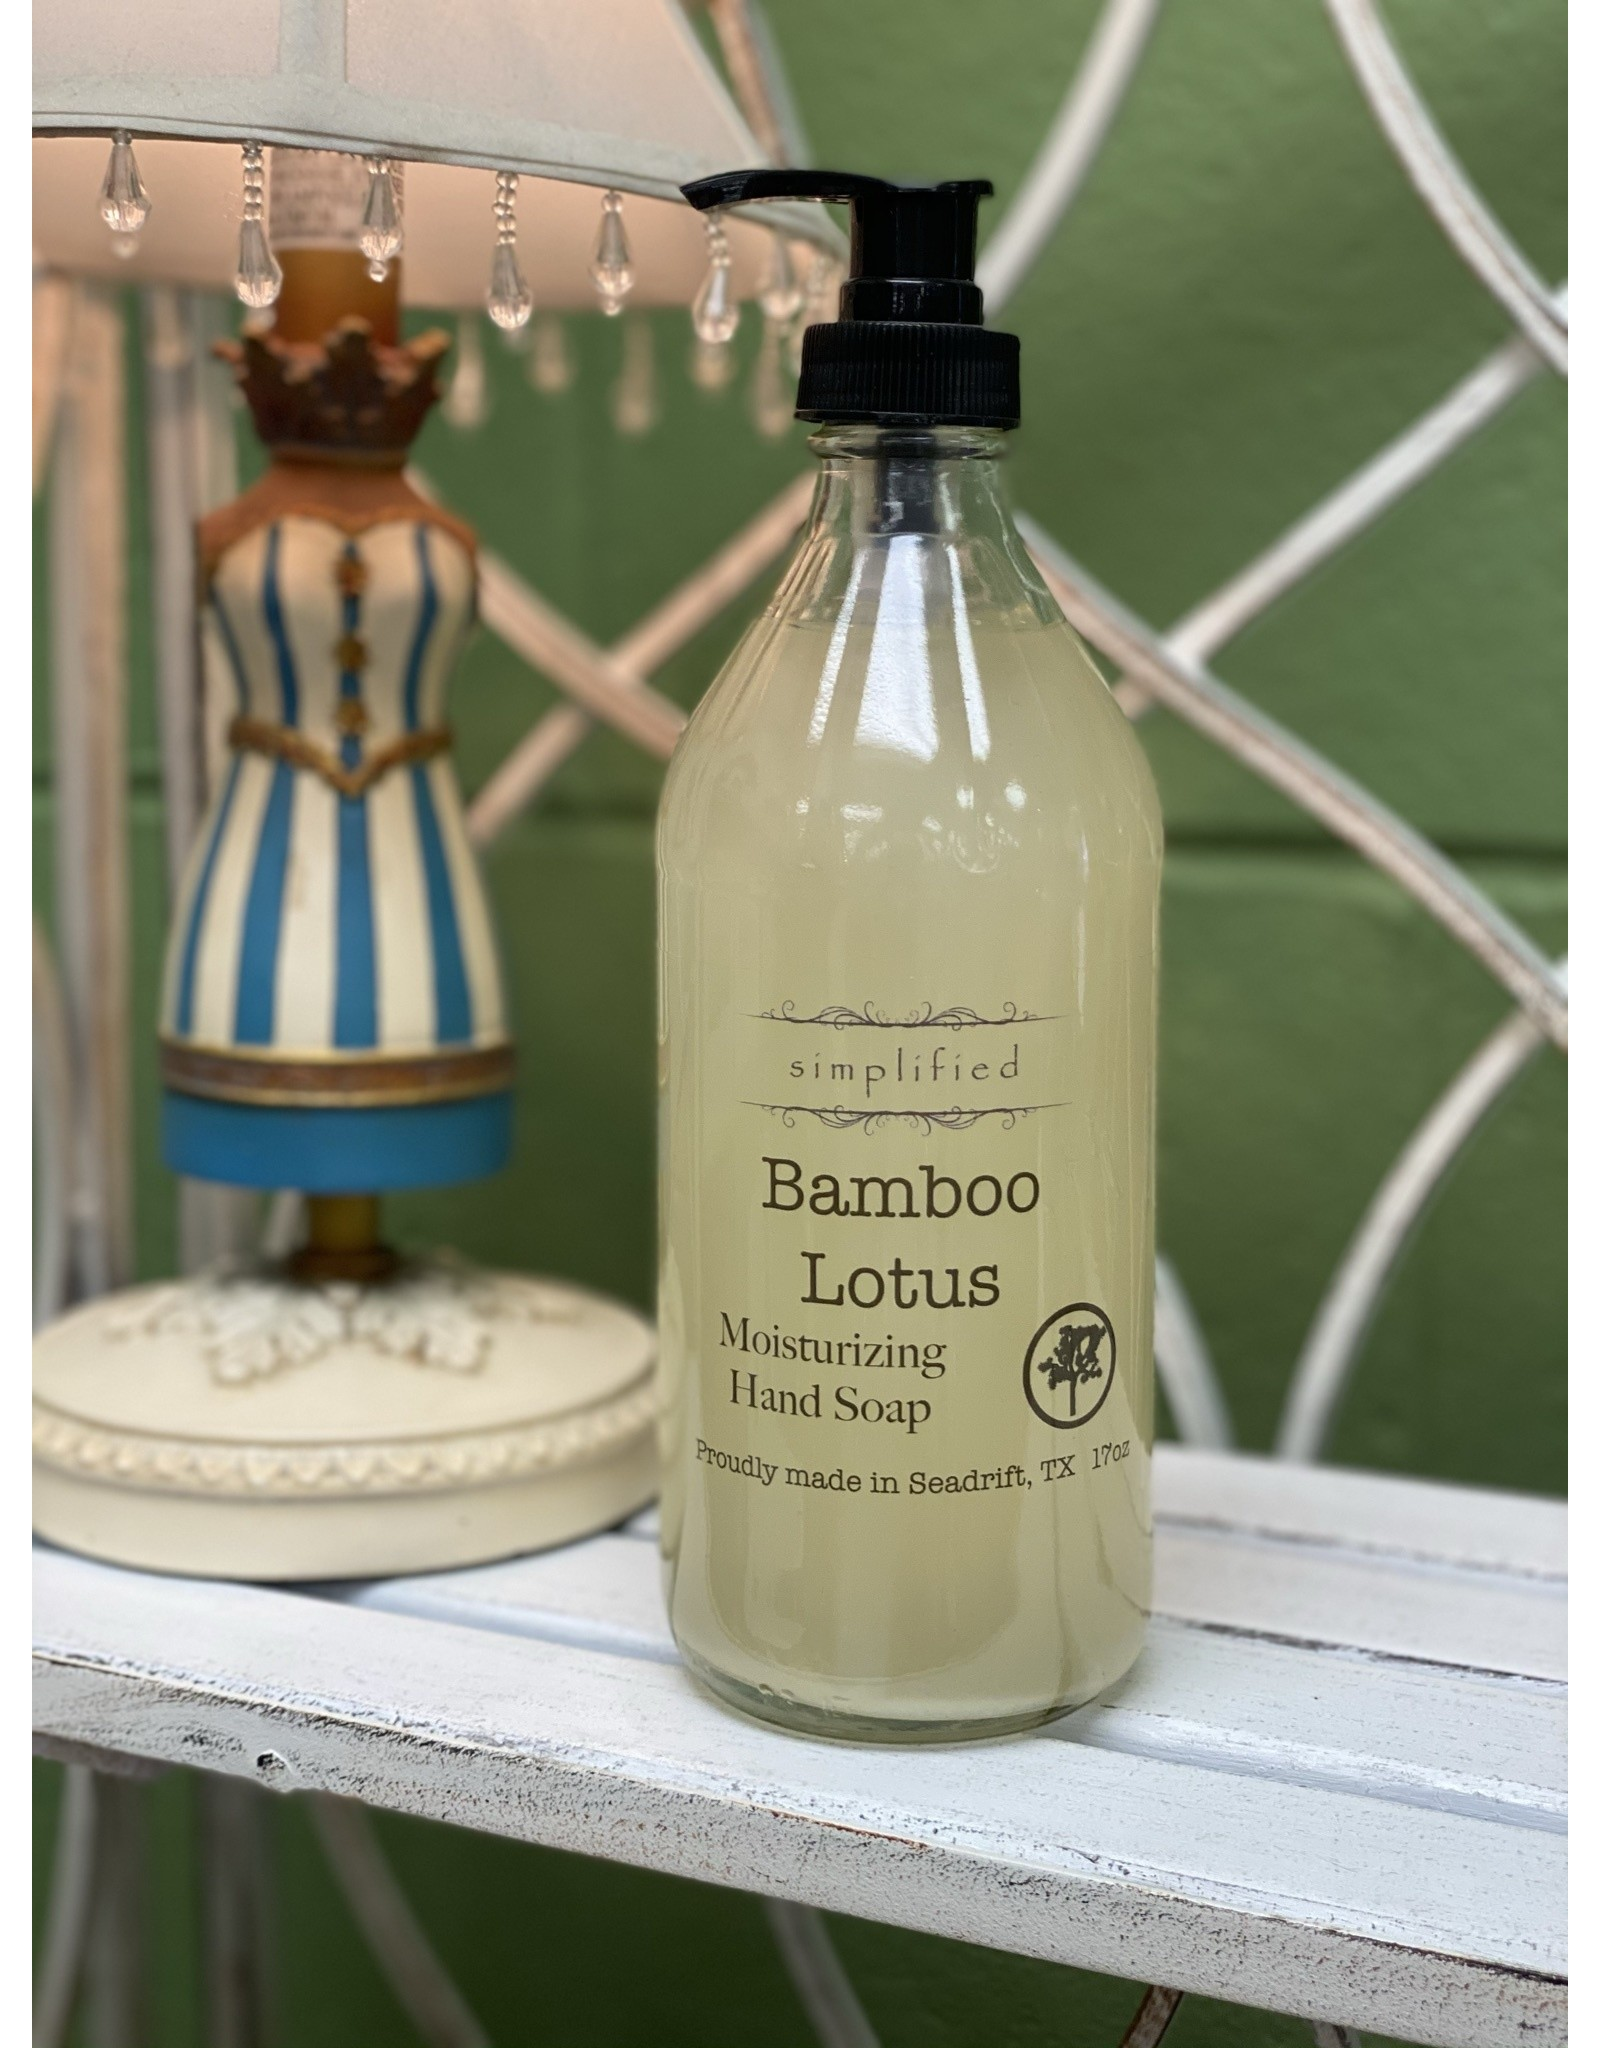 Bamboo Lotus Moisturizing Hand Soap 17oz